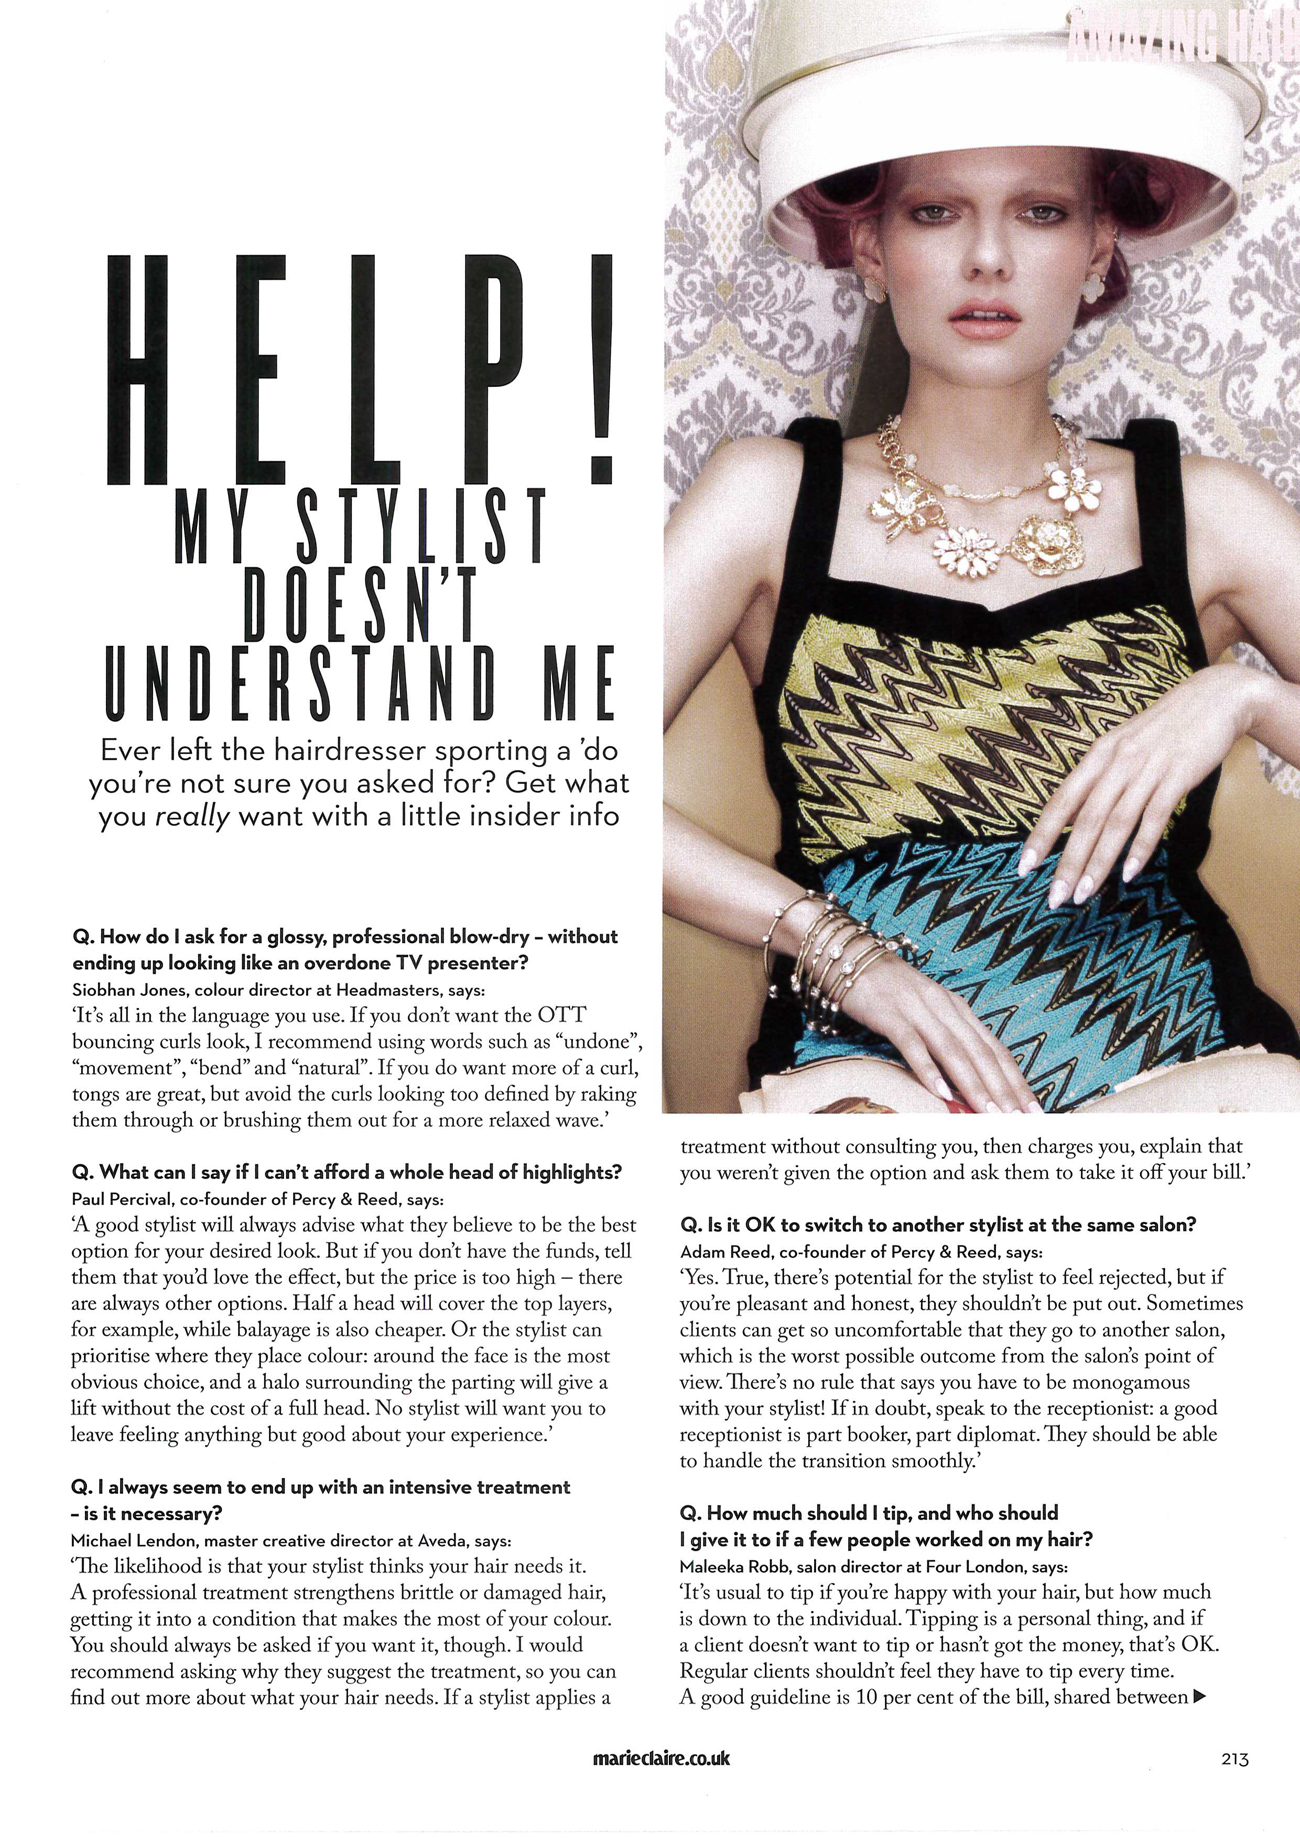 Marie Claire hair FAQs featuring tips from Siobhan Jones_Page_2